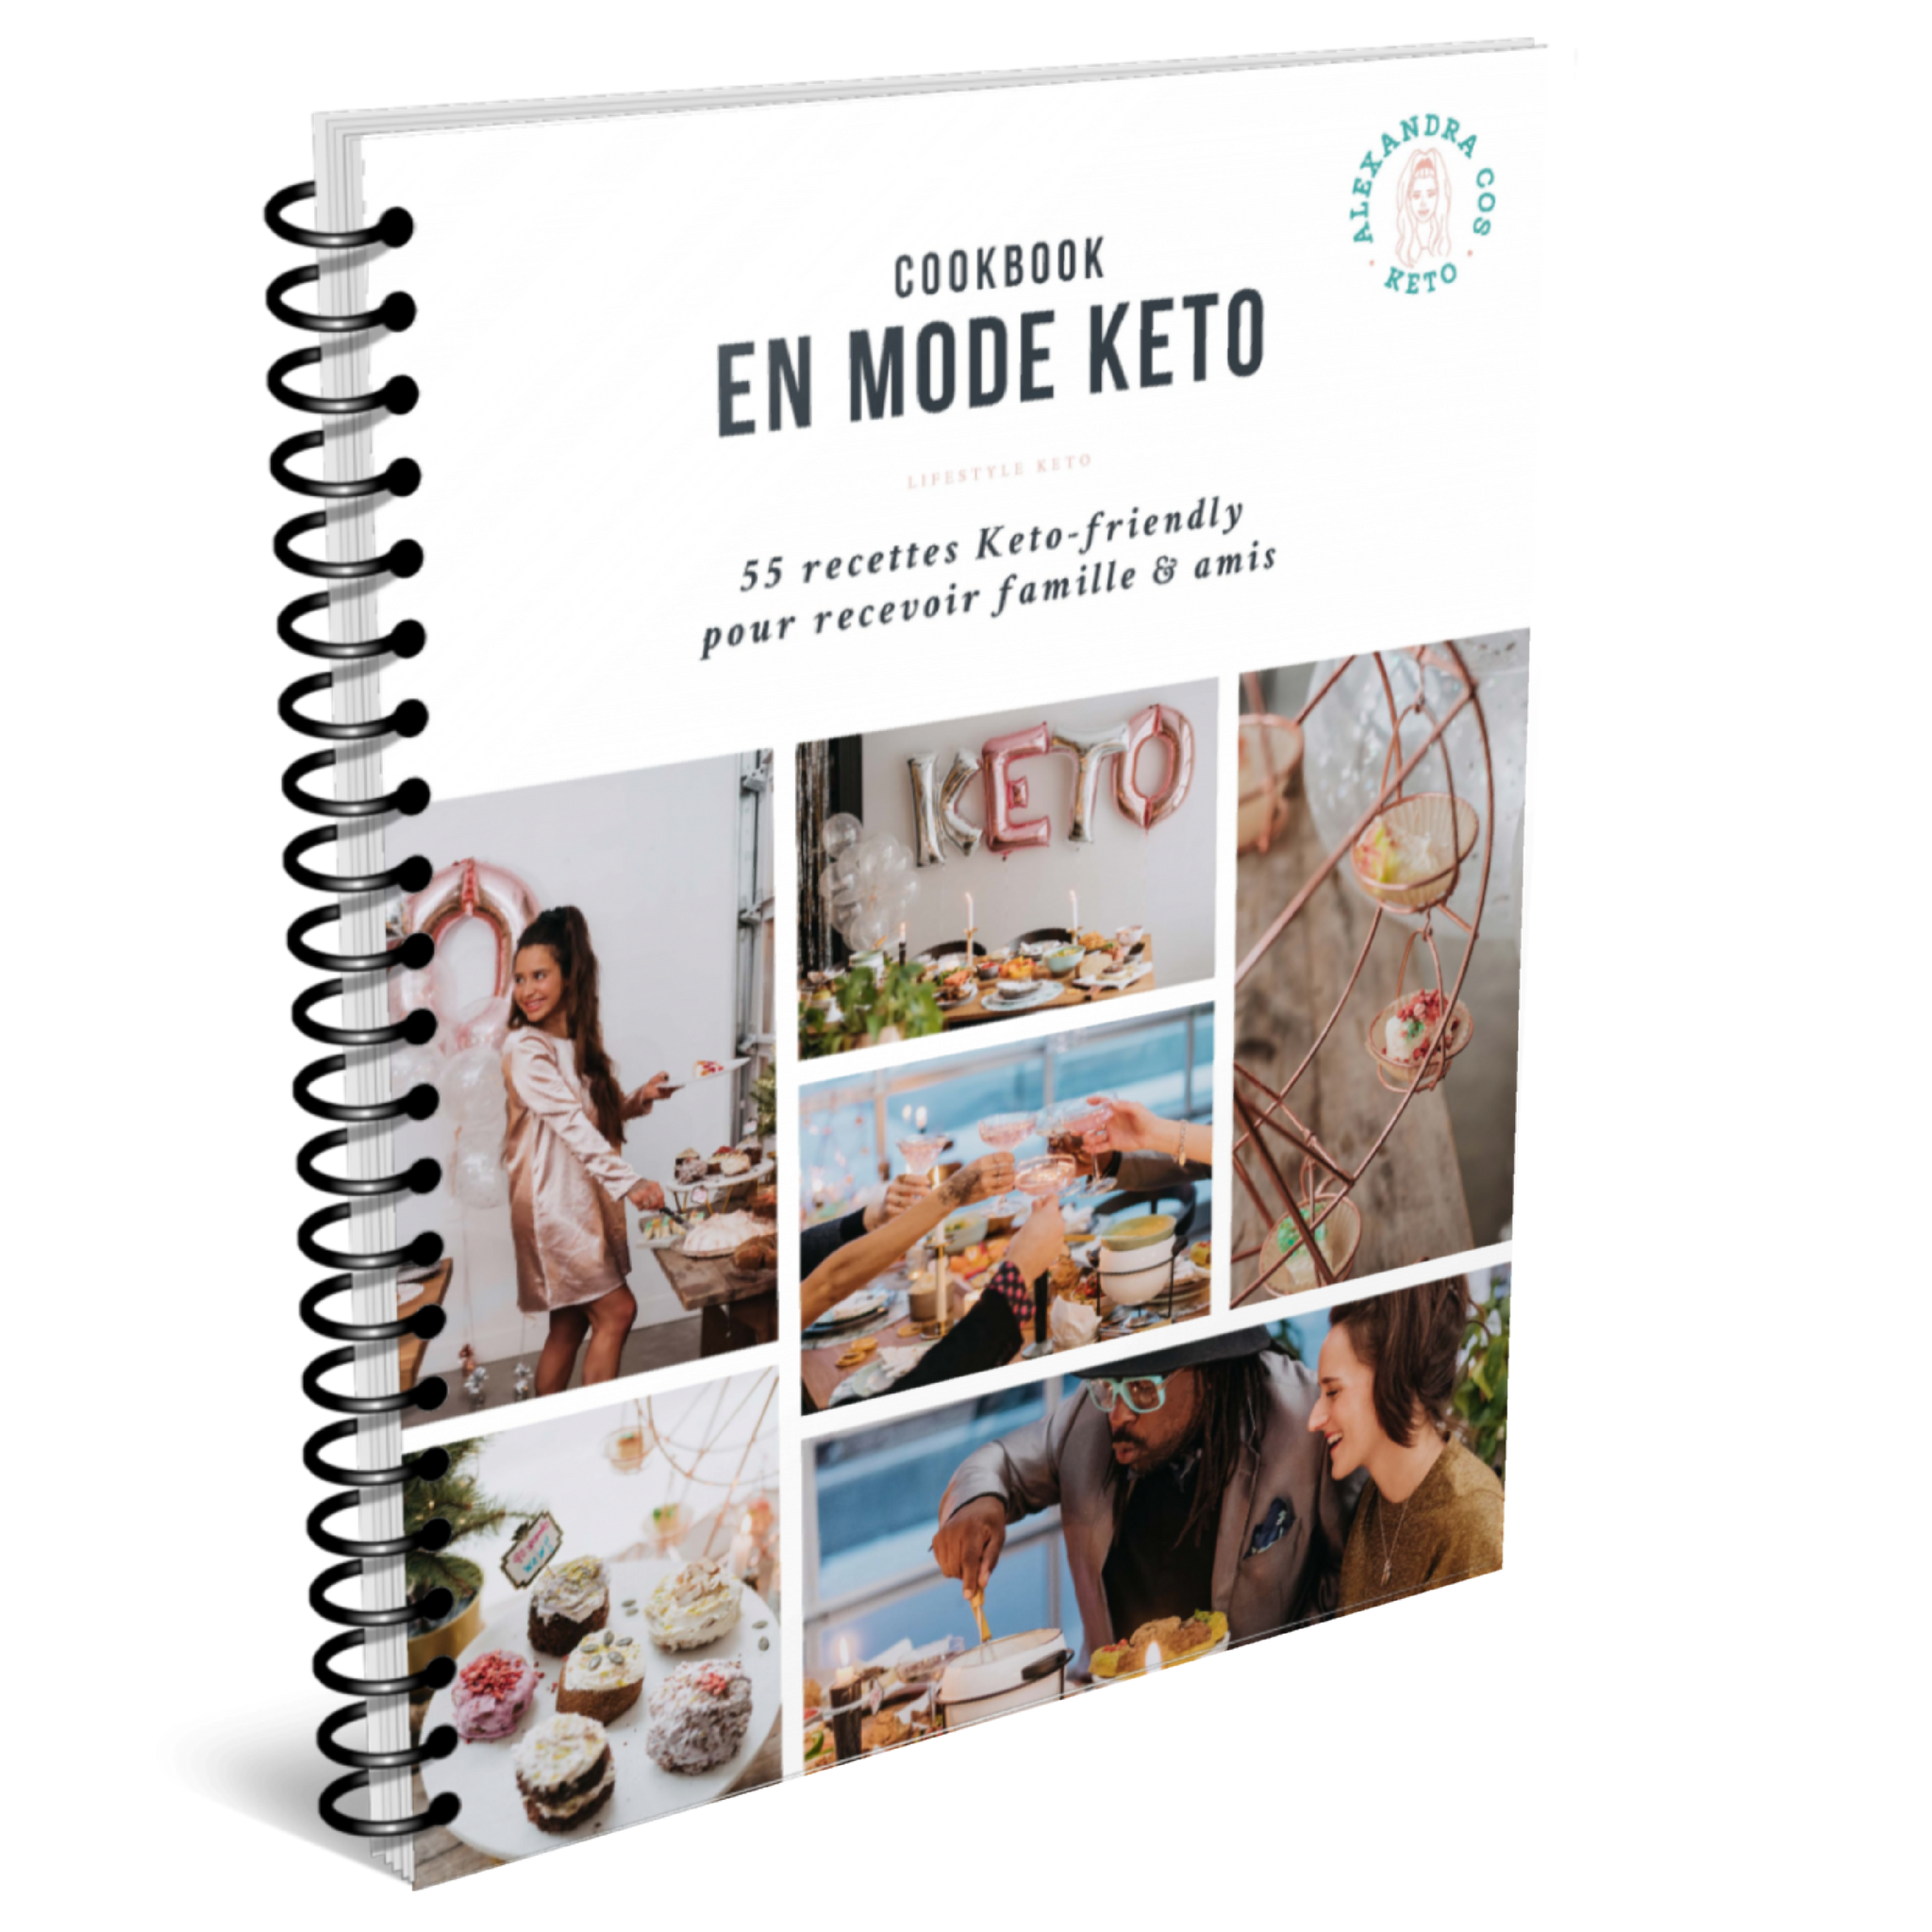 Cookbook En Mode Keto